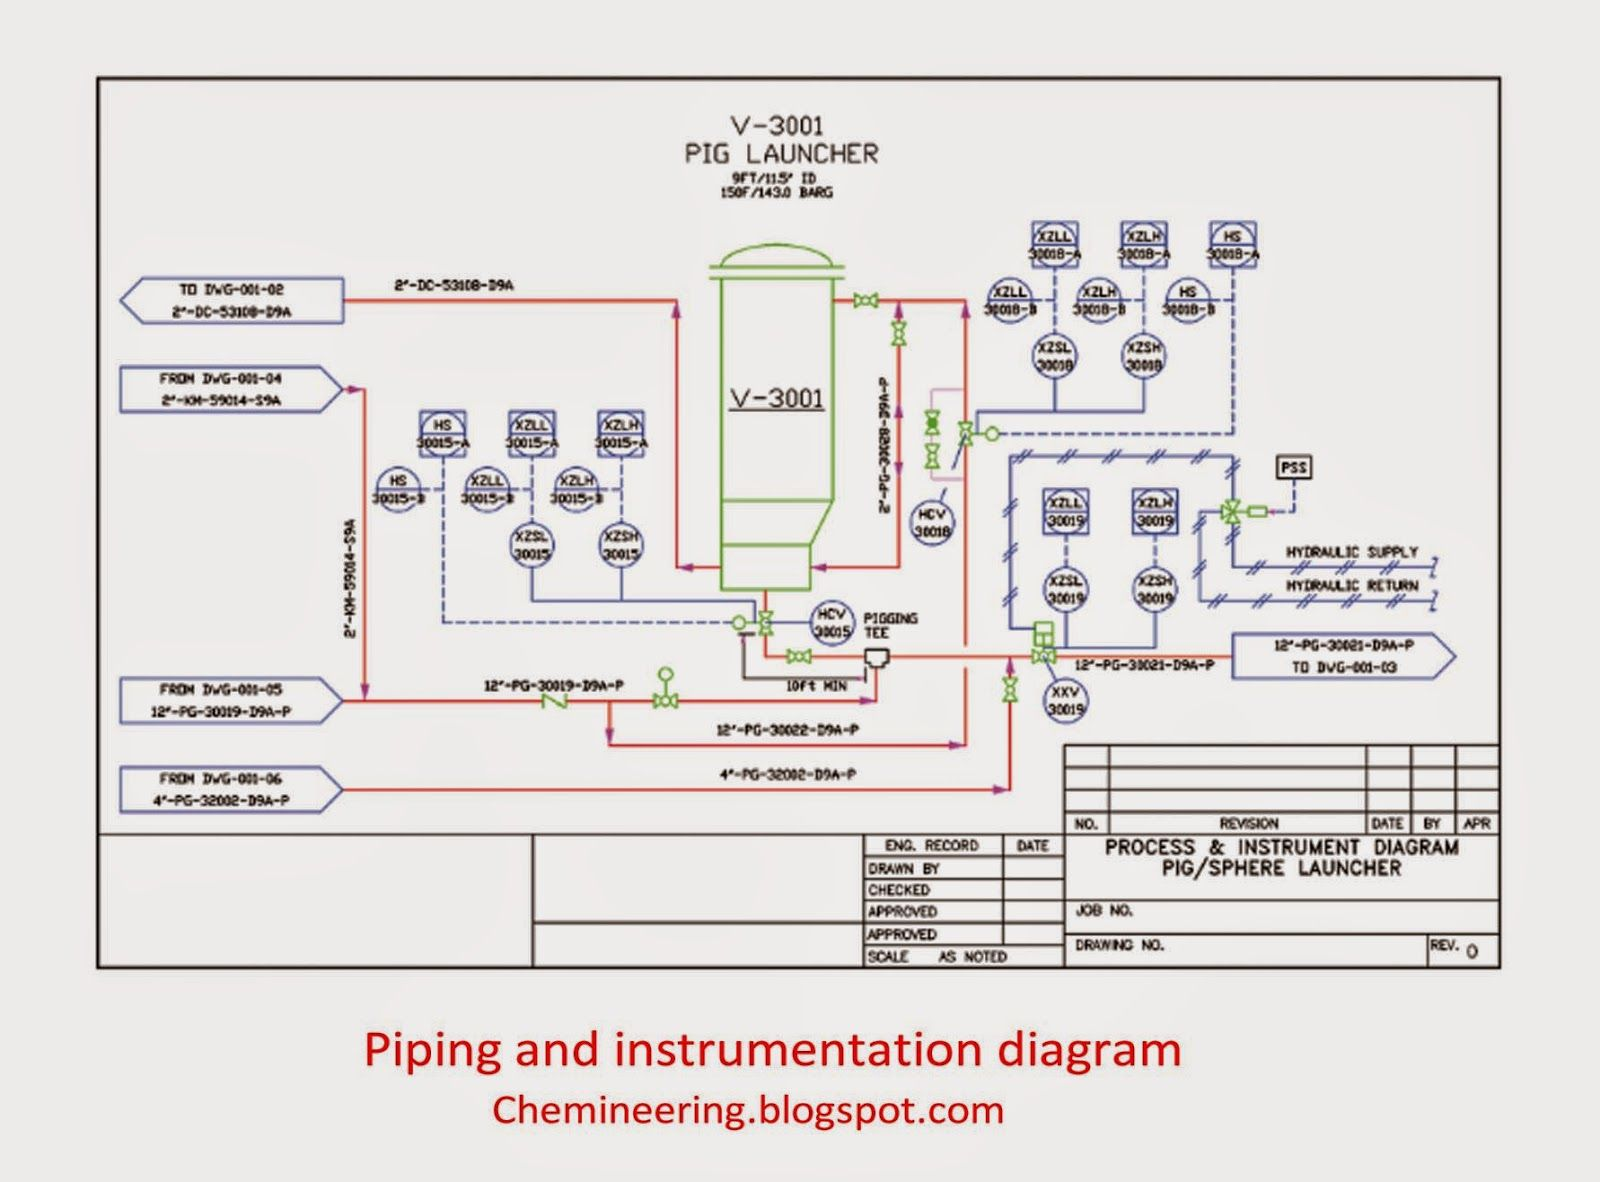 ideas about piping and instrumentation diagram on, wiring diagram